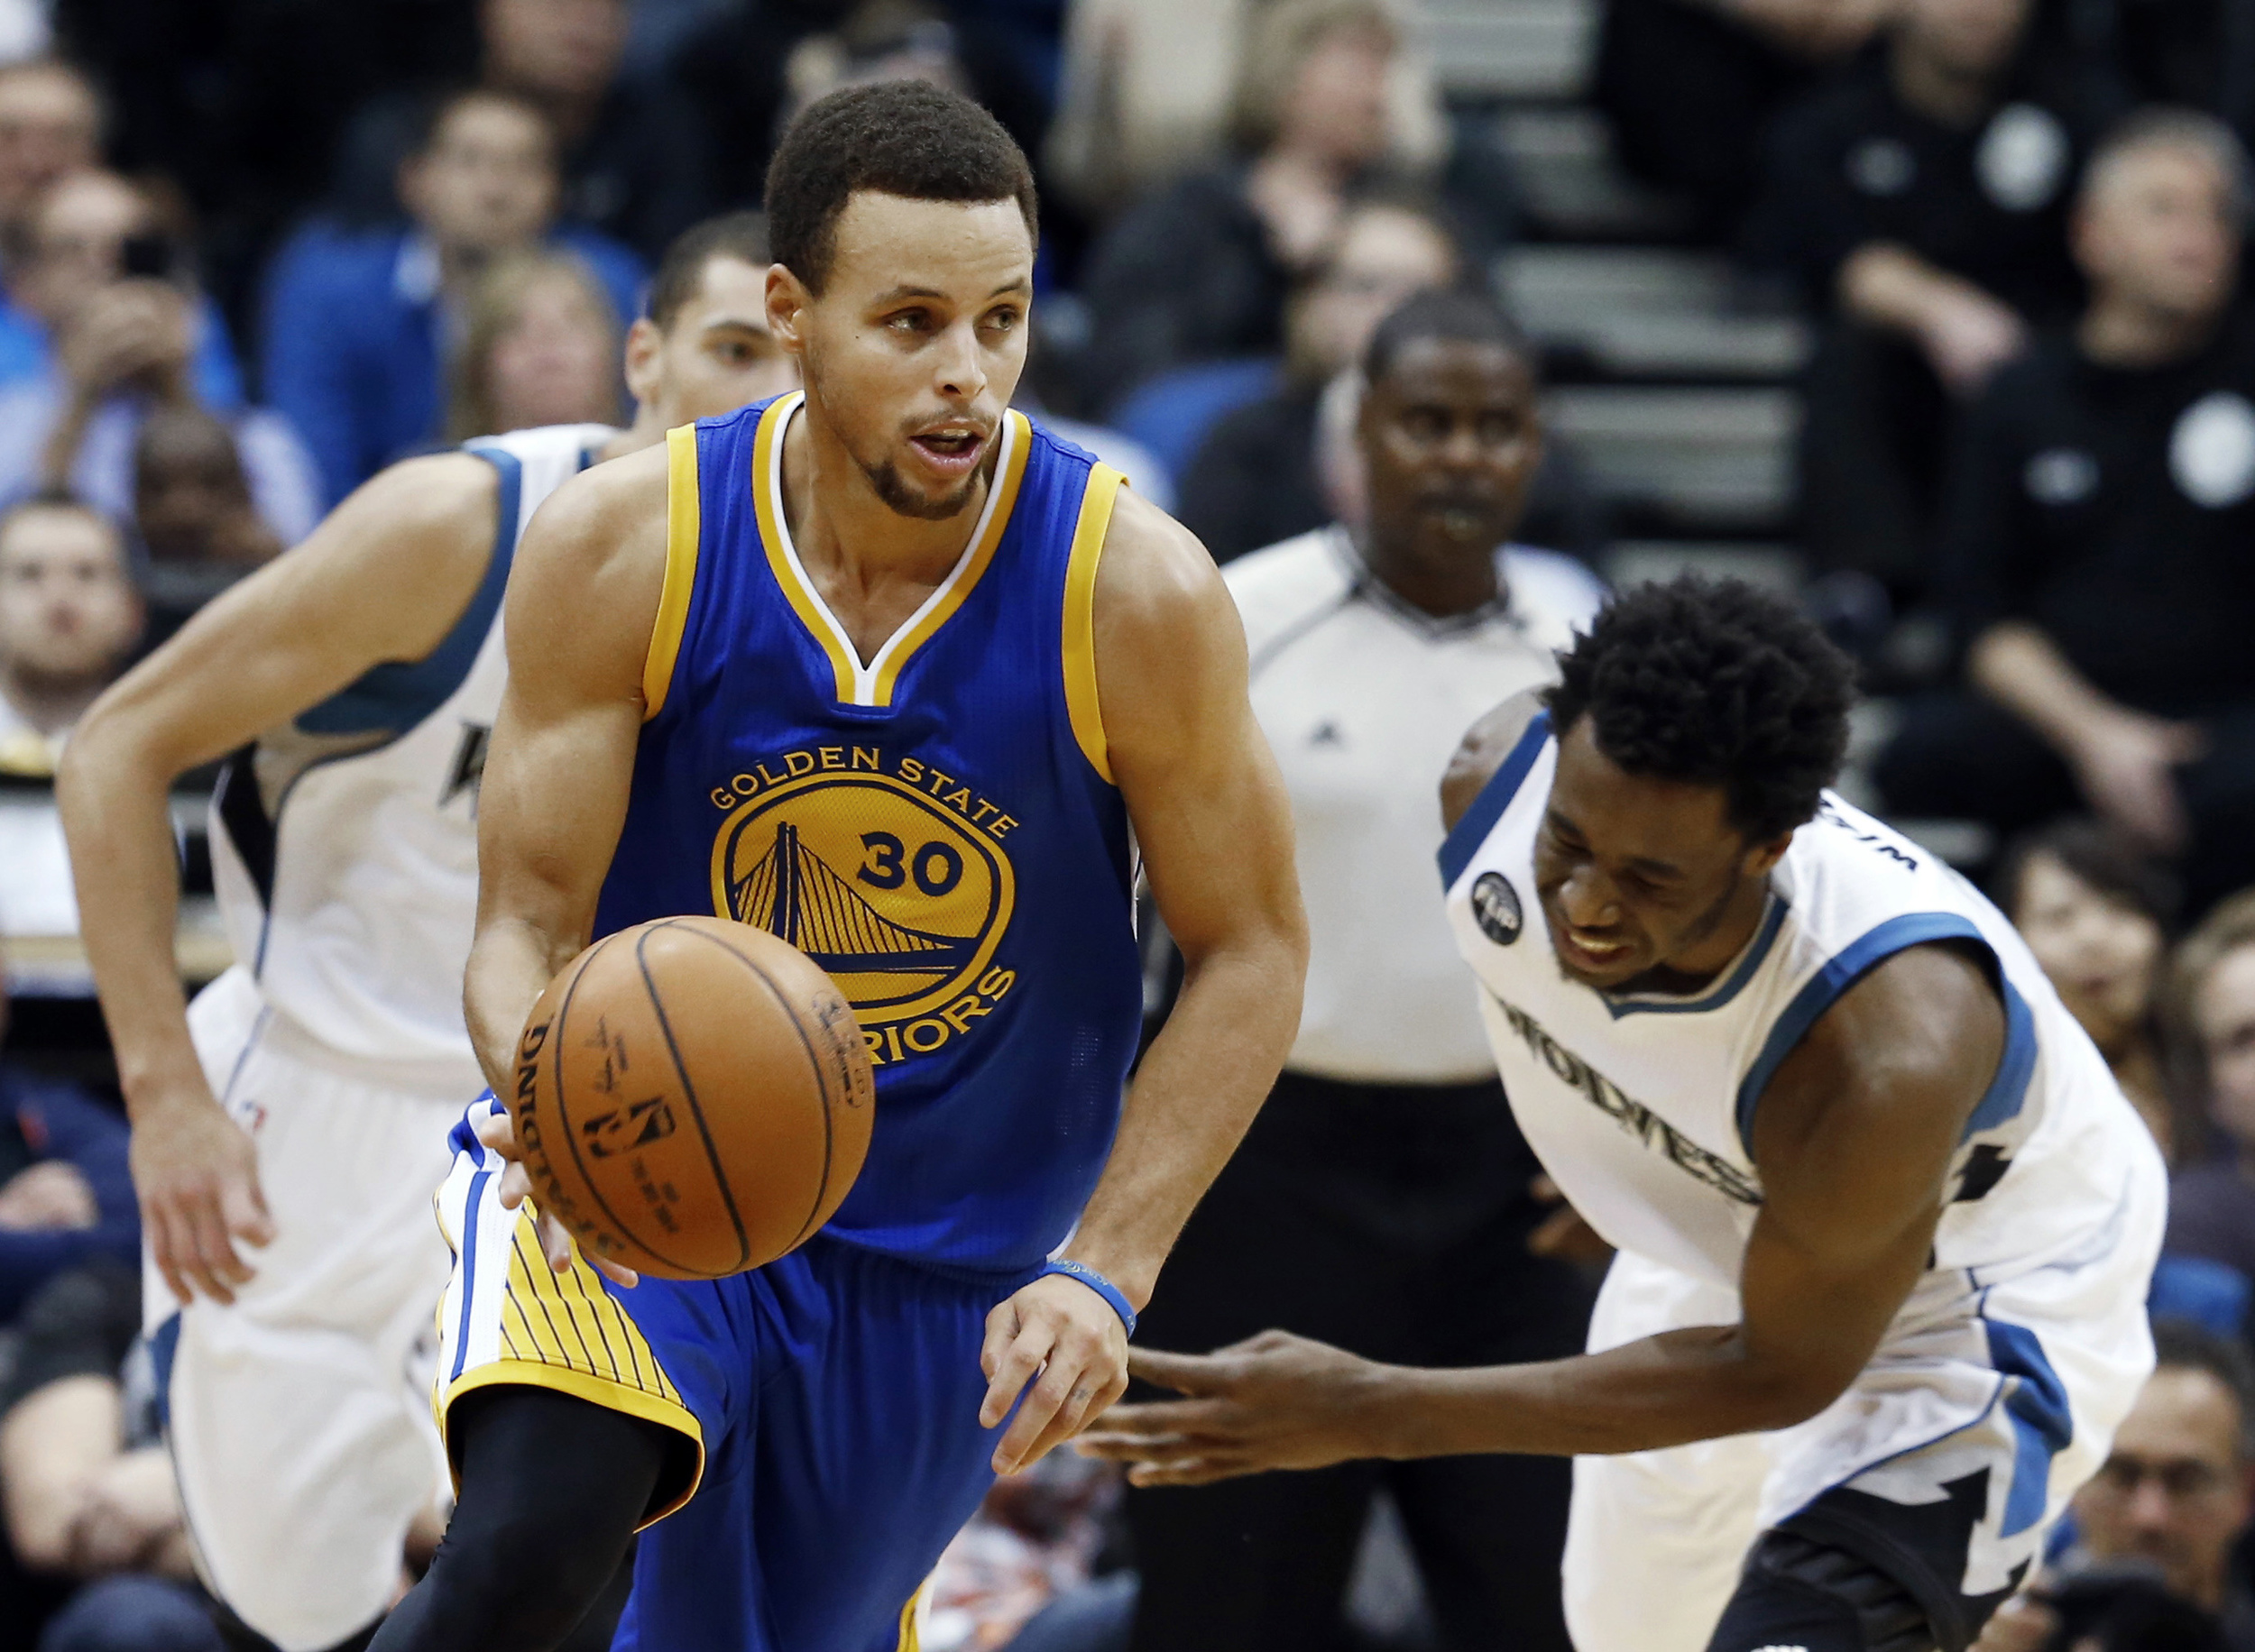 Golden State Warriors' Stephen Curry, left, beats Minnesota Timberwolves' Andrew Wiggins to the ball during the second half of an NBA basketball game, Thursday, Nov. 12, 2015, in Minneapolis. The Warriors won 129-116. (Jim Mone/AP)